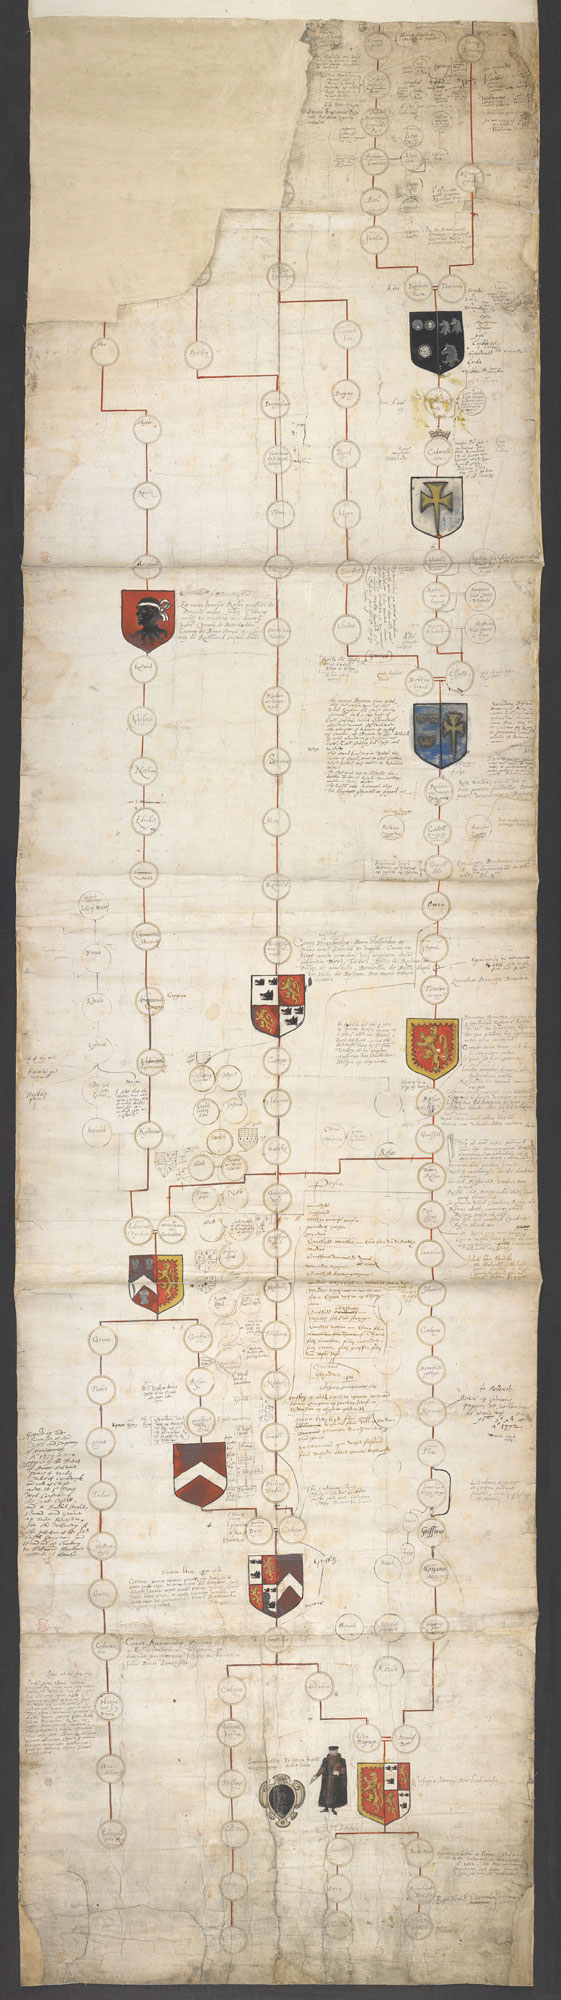 John Dee's genealogy and self-portrait - The British Library